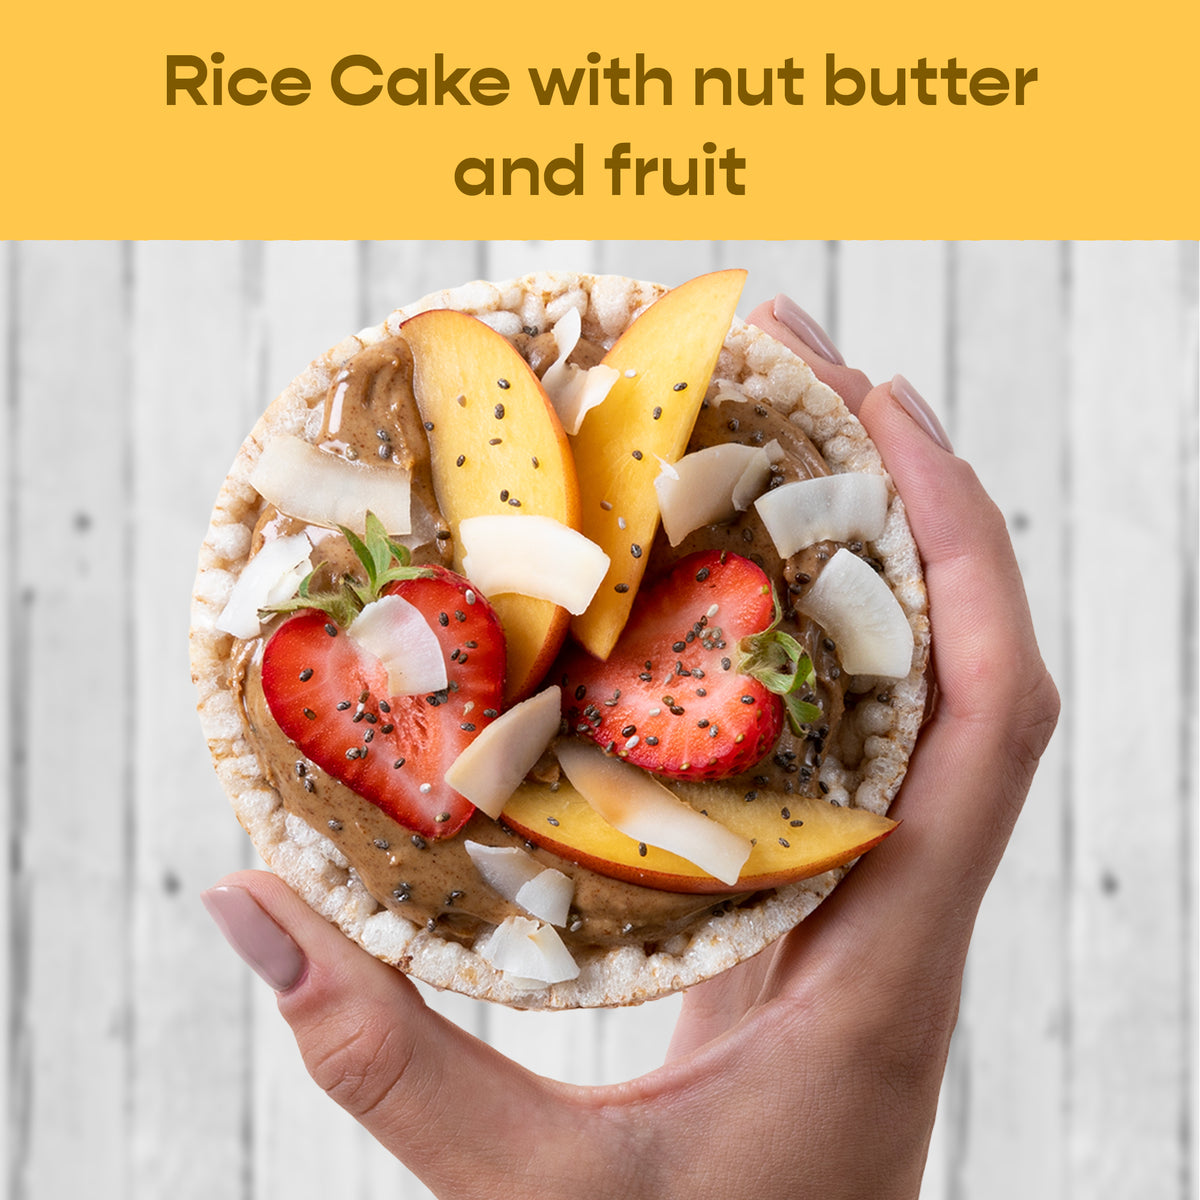 Rice Cake with Nut Butter and Fruit Recipe Dish Buy Now